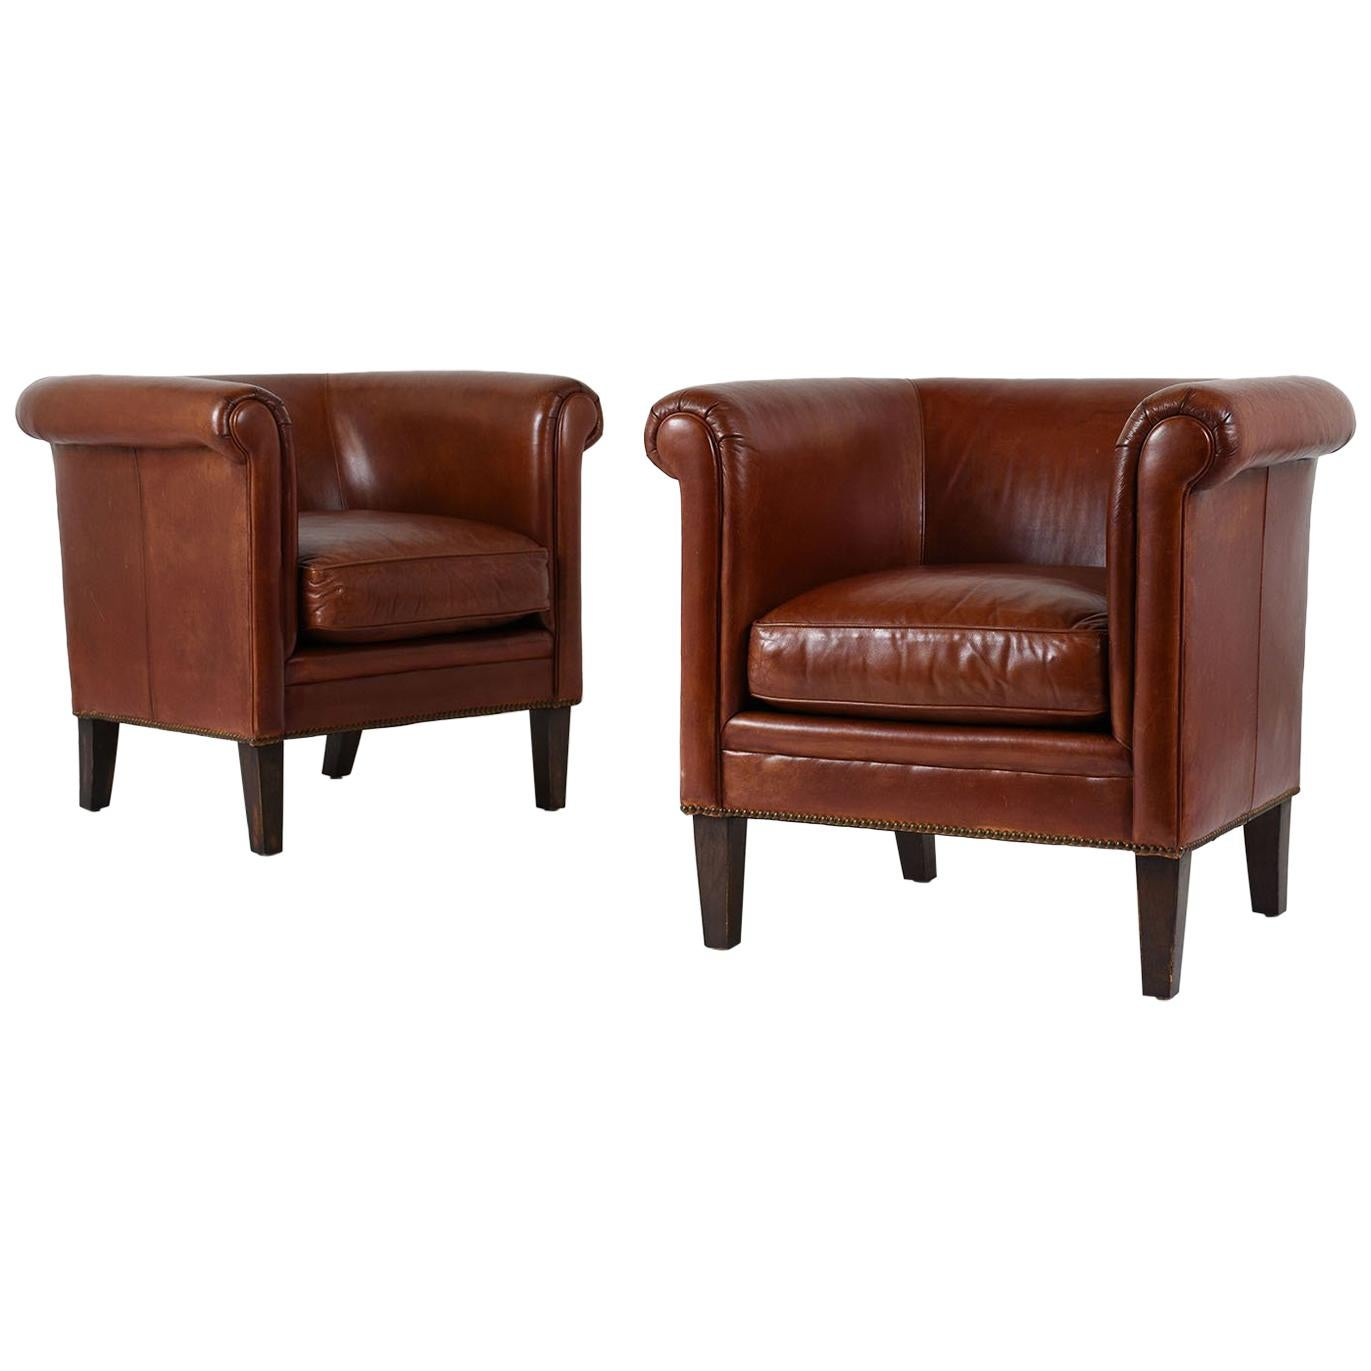 bernhardt brown leather club chair target outdoor lounge chairs pair of regency style for sale at 1stdibs